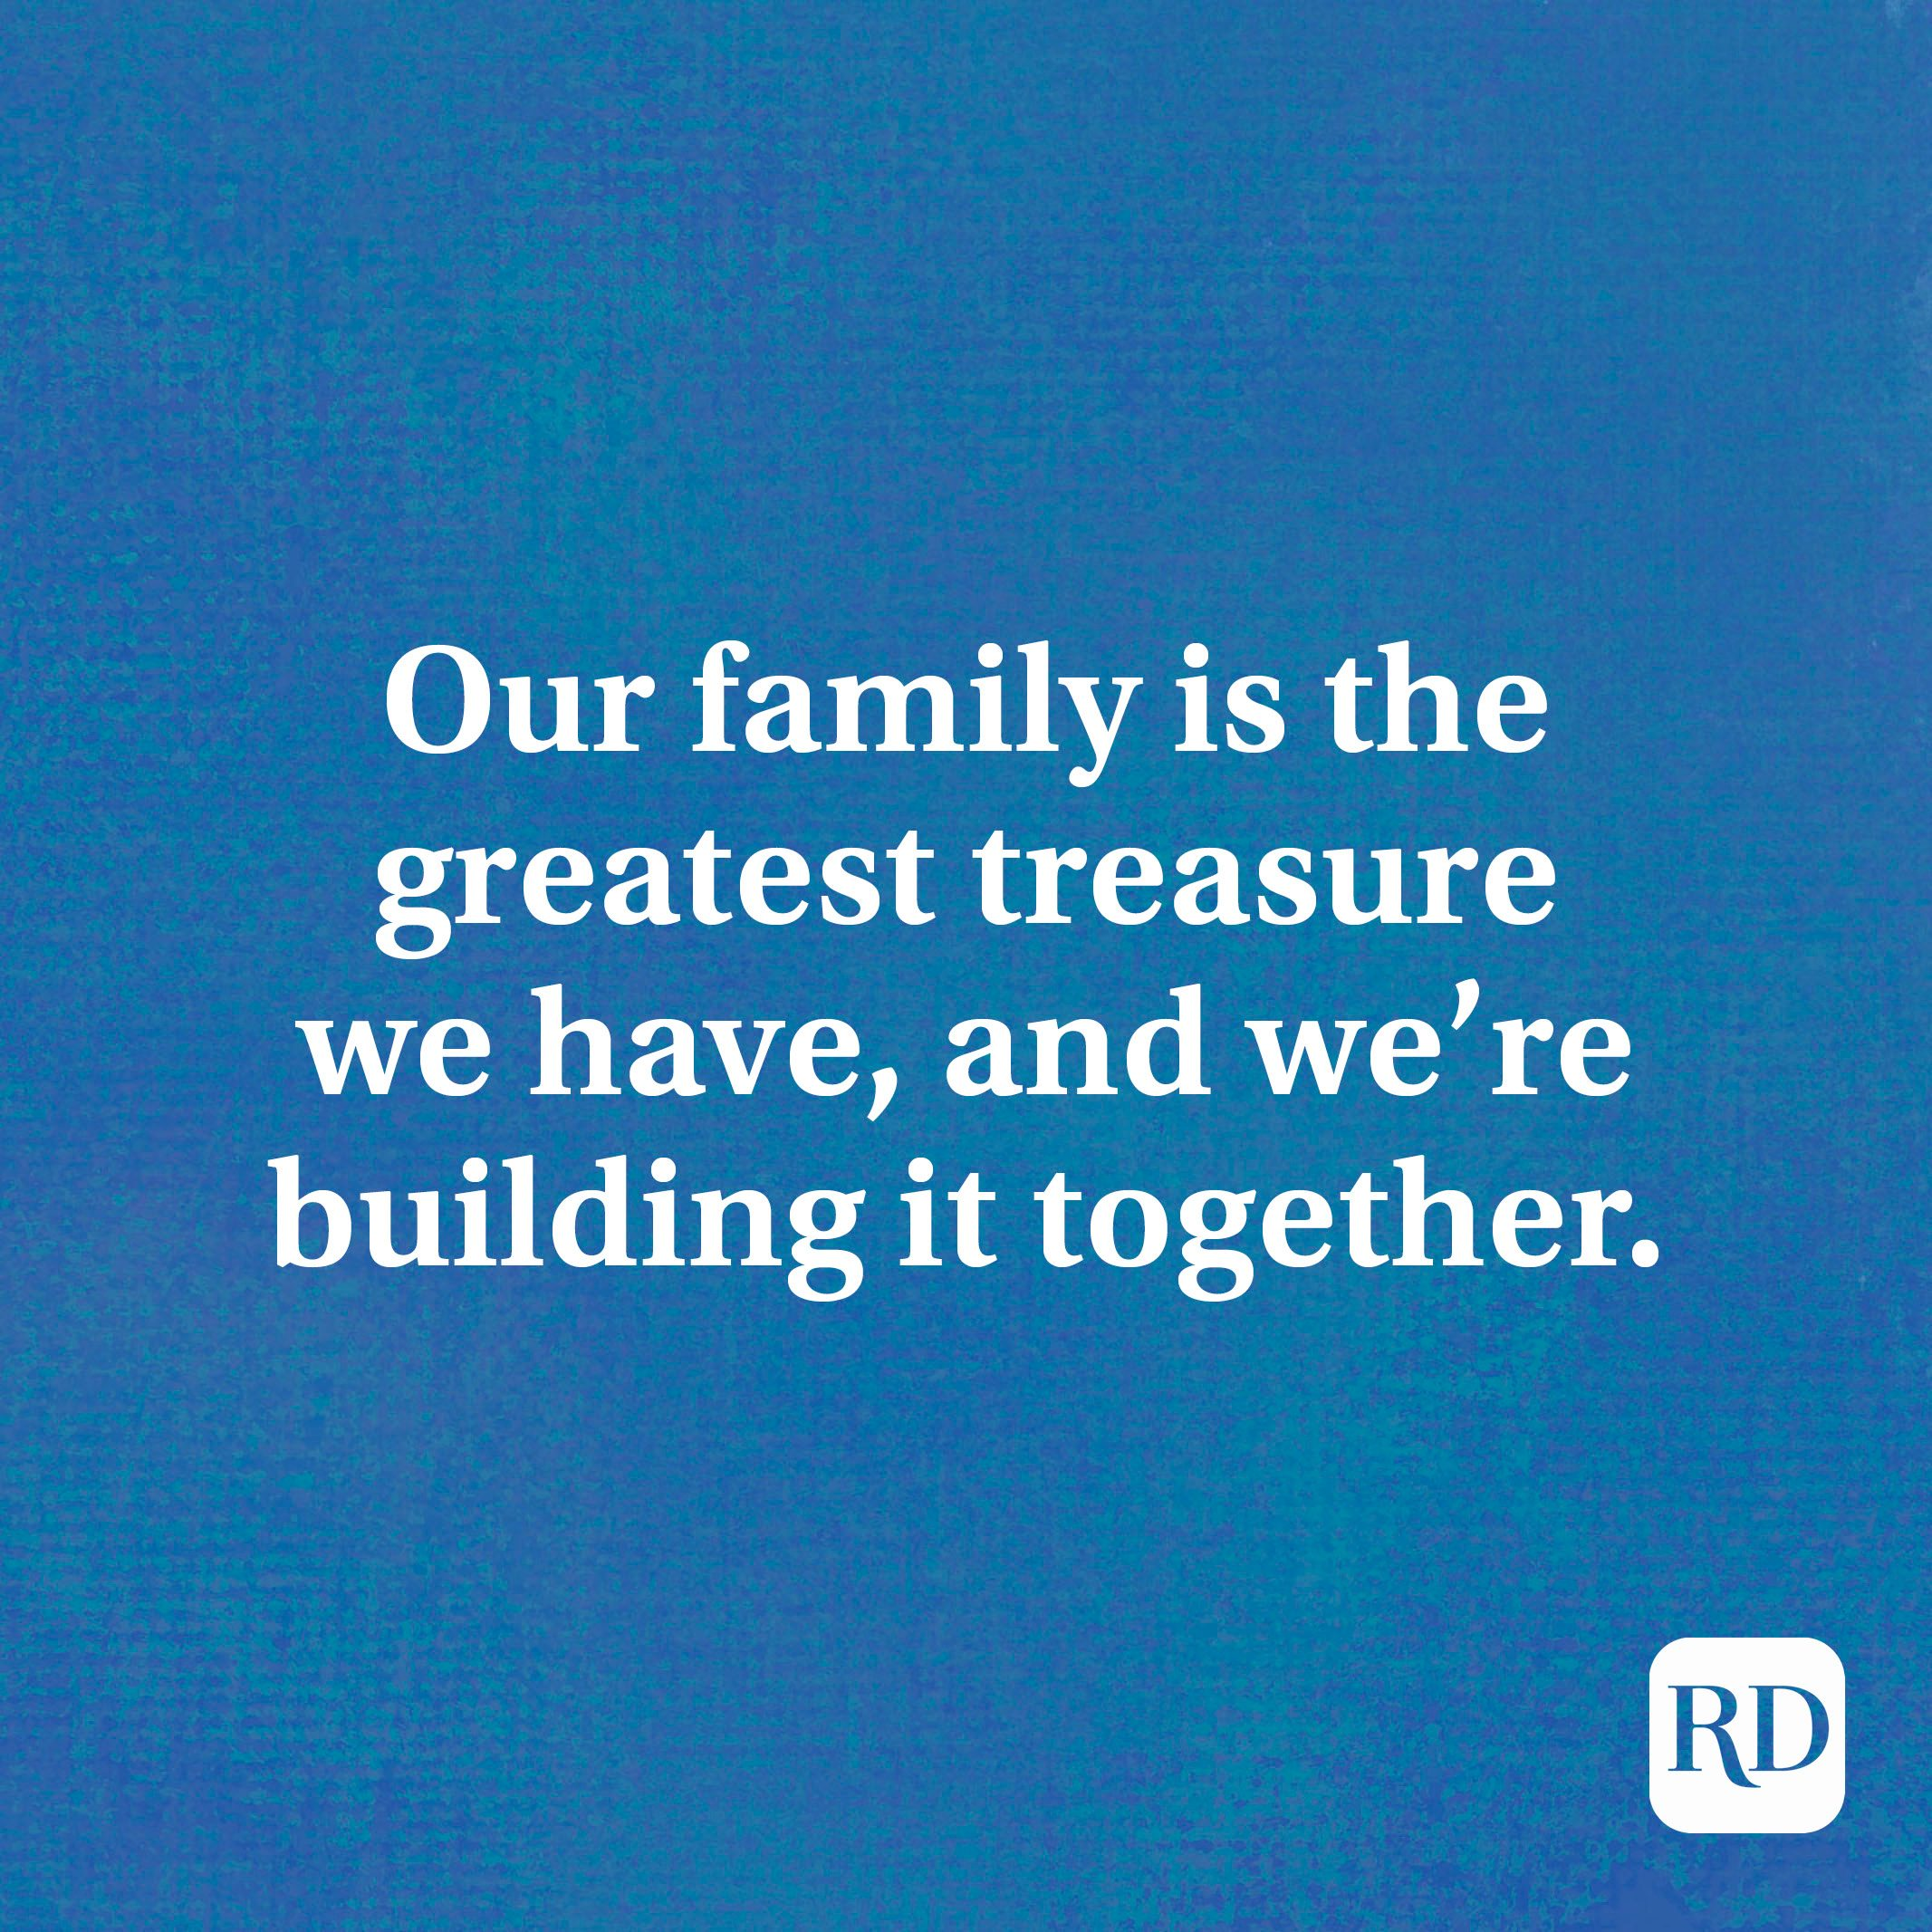 Our family is the greatest treasure we have, and we're building it together.